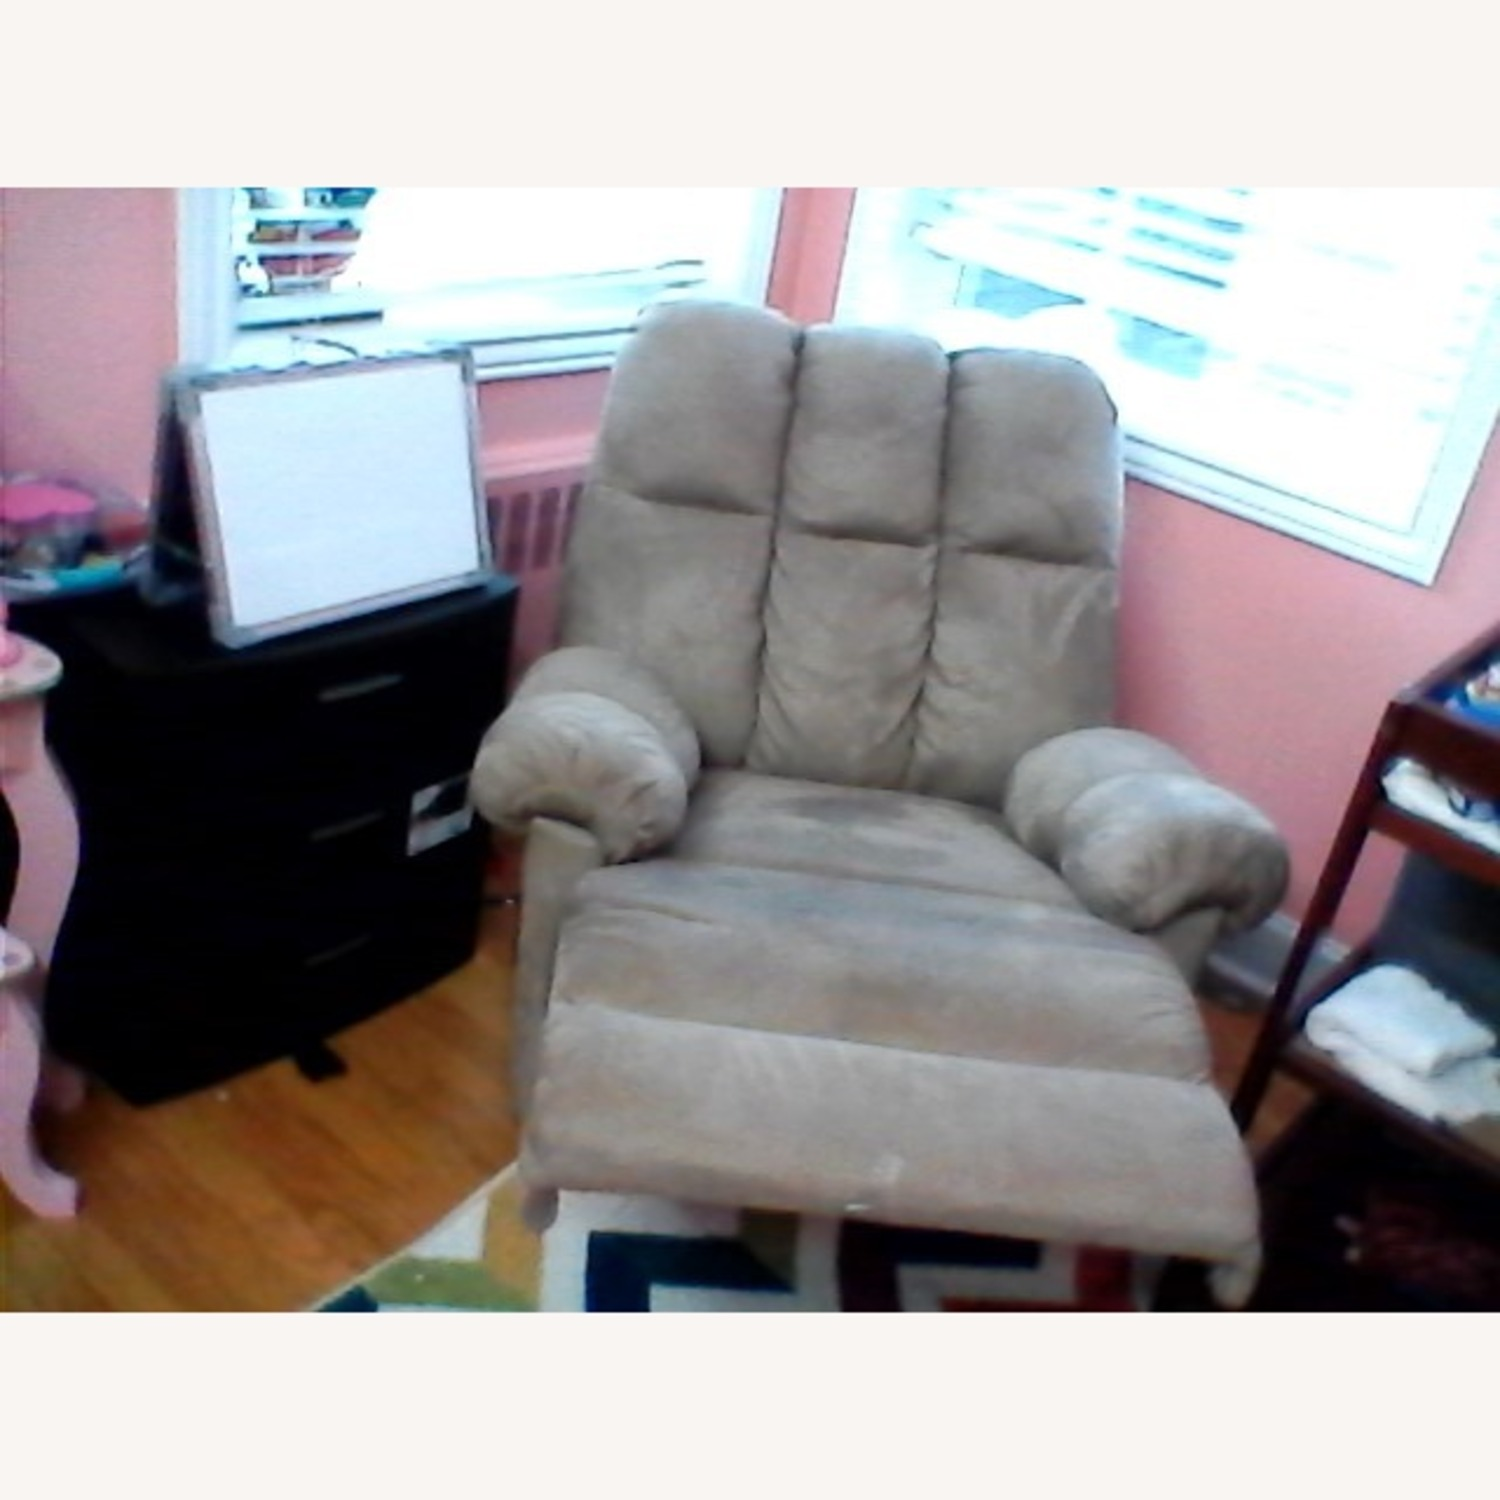 Rocking Chair Nursing and Recliner 2 in 1 - image-2